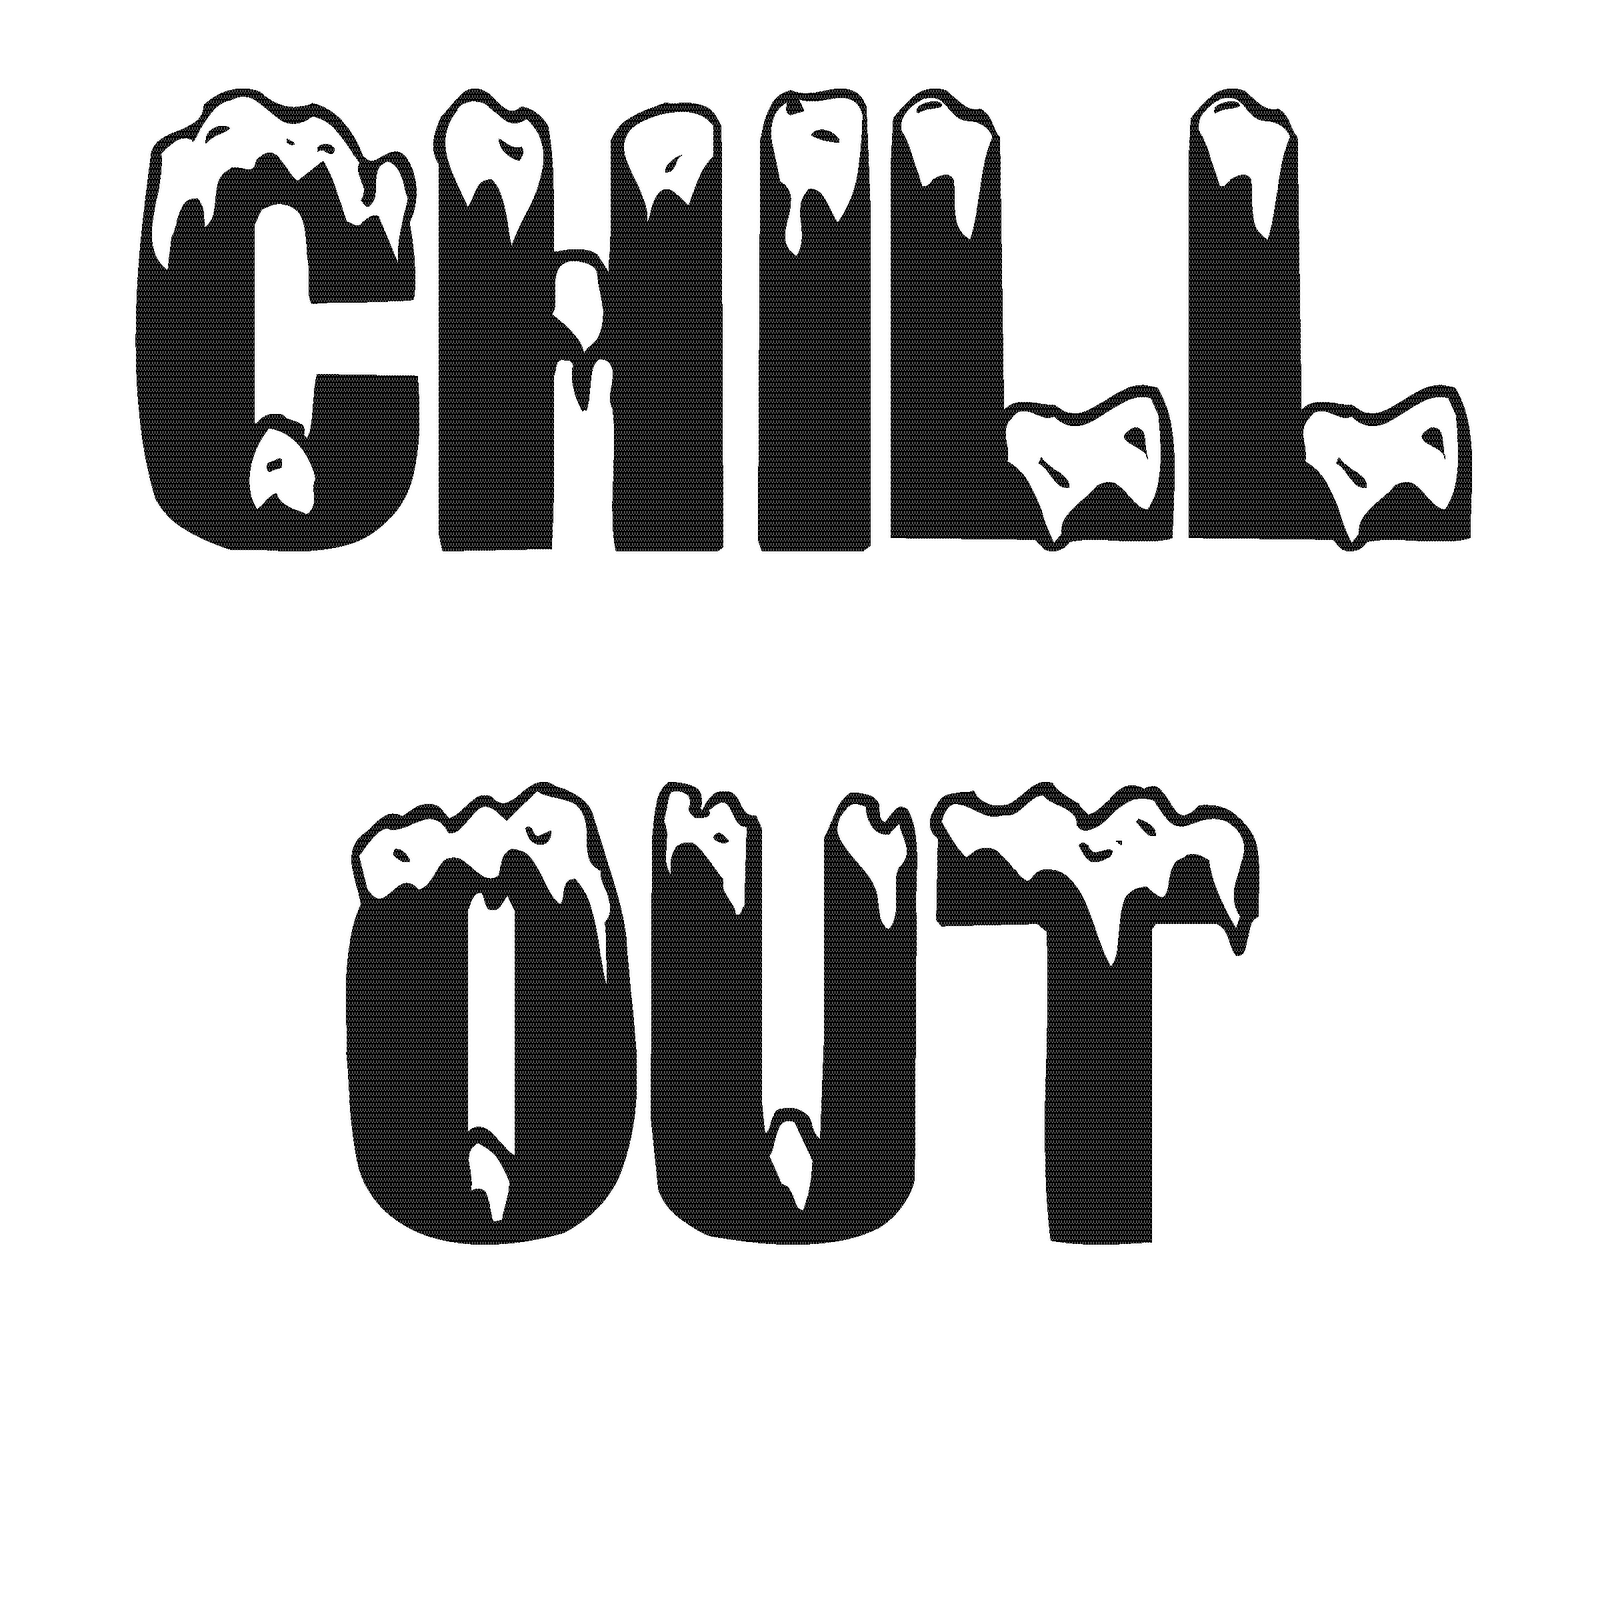 BLOGINTHENOW: CHILL OUT!